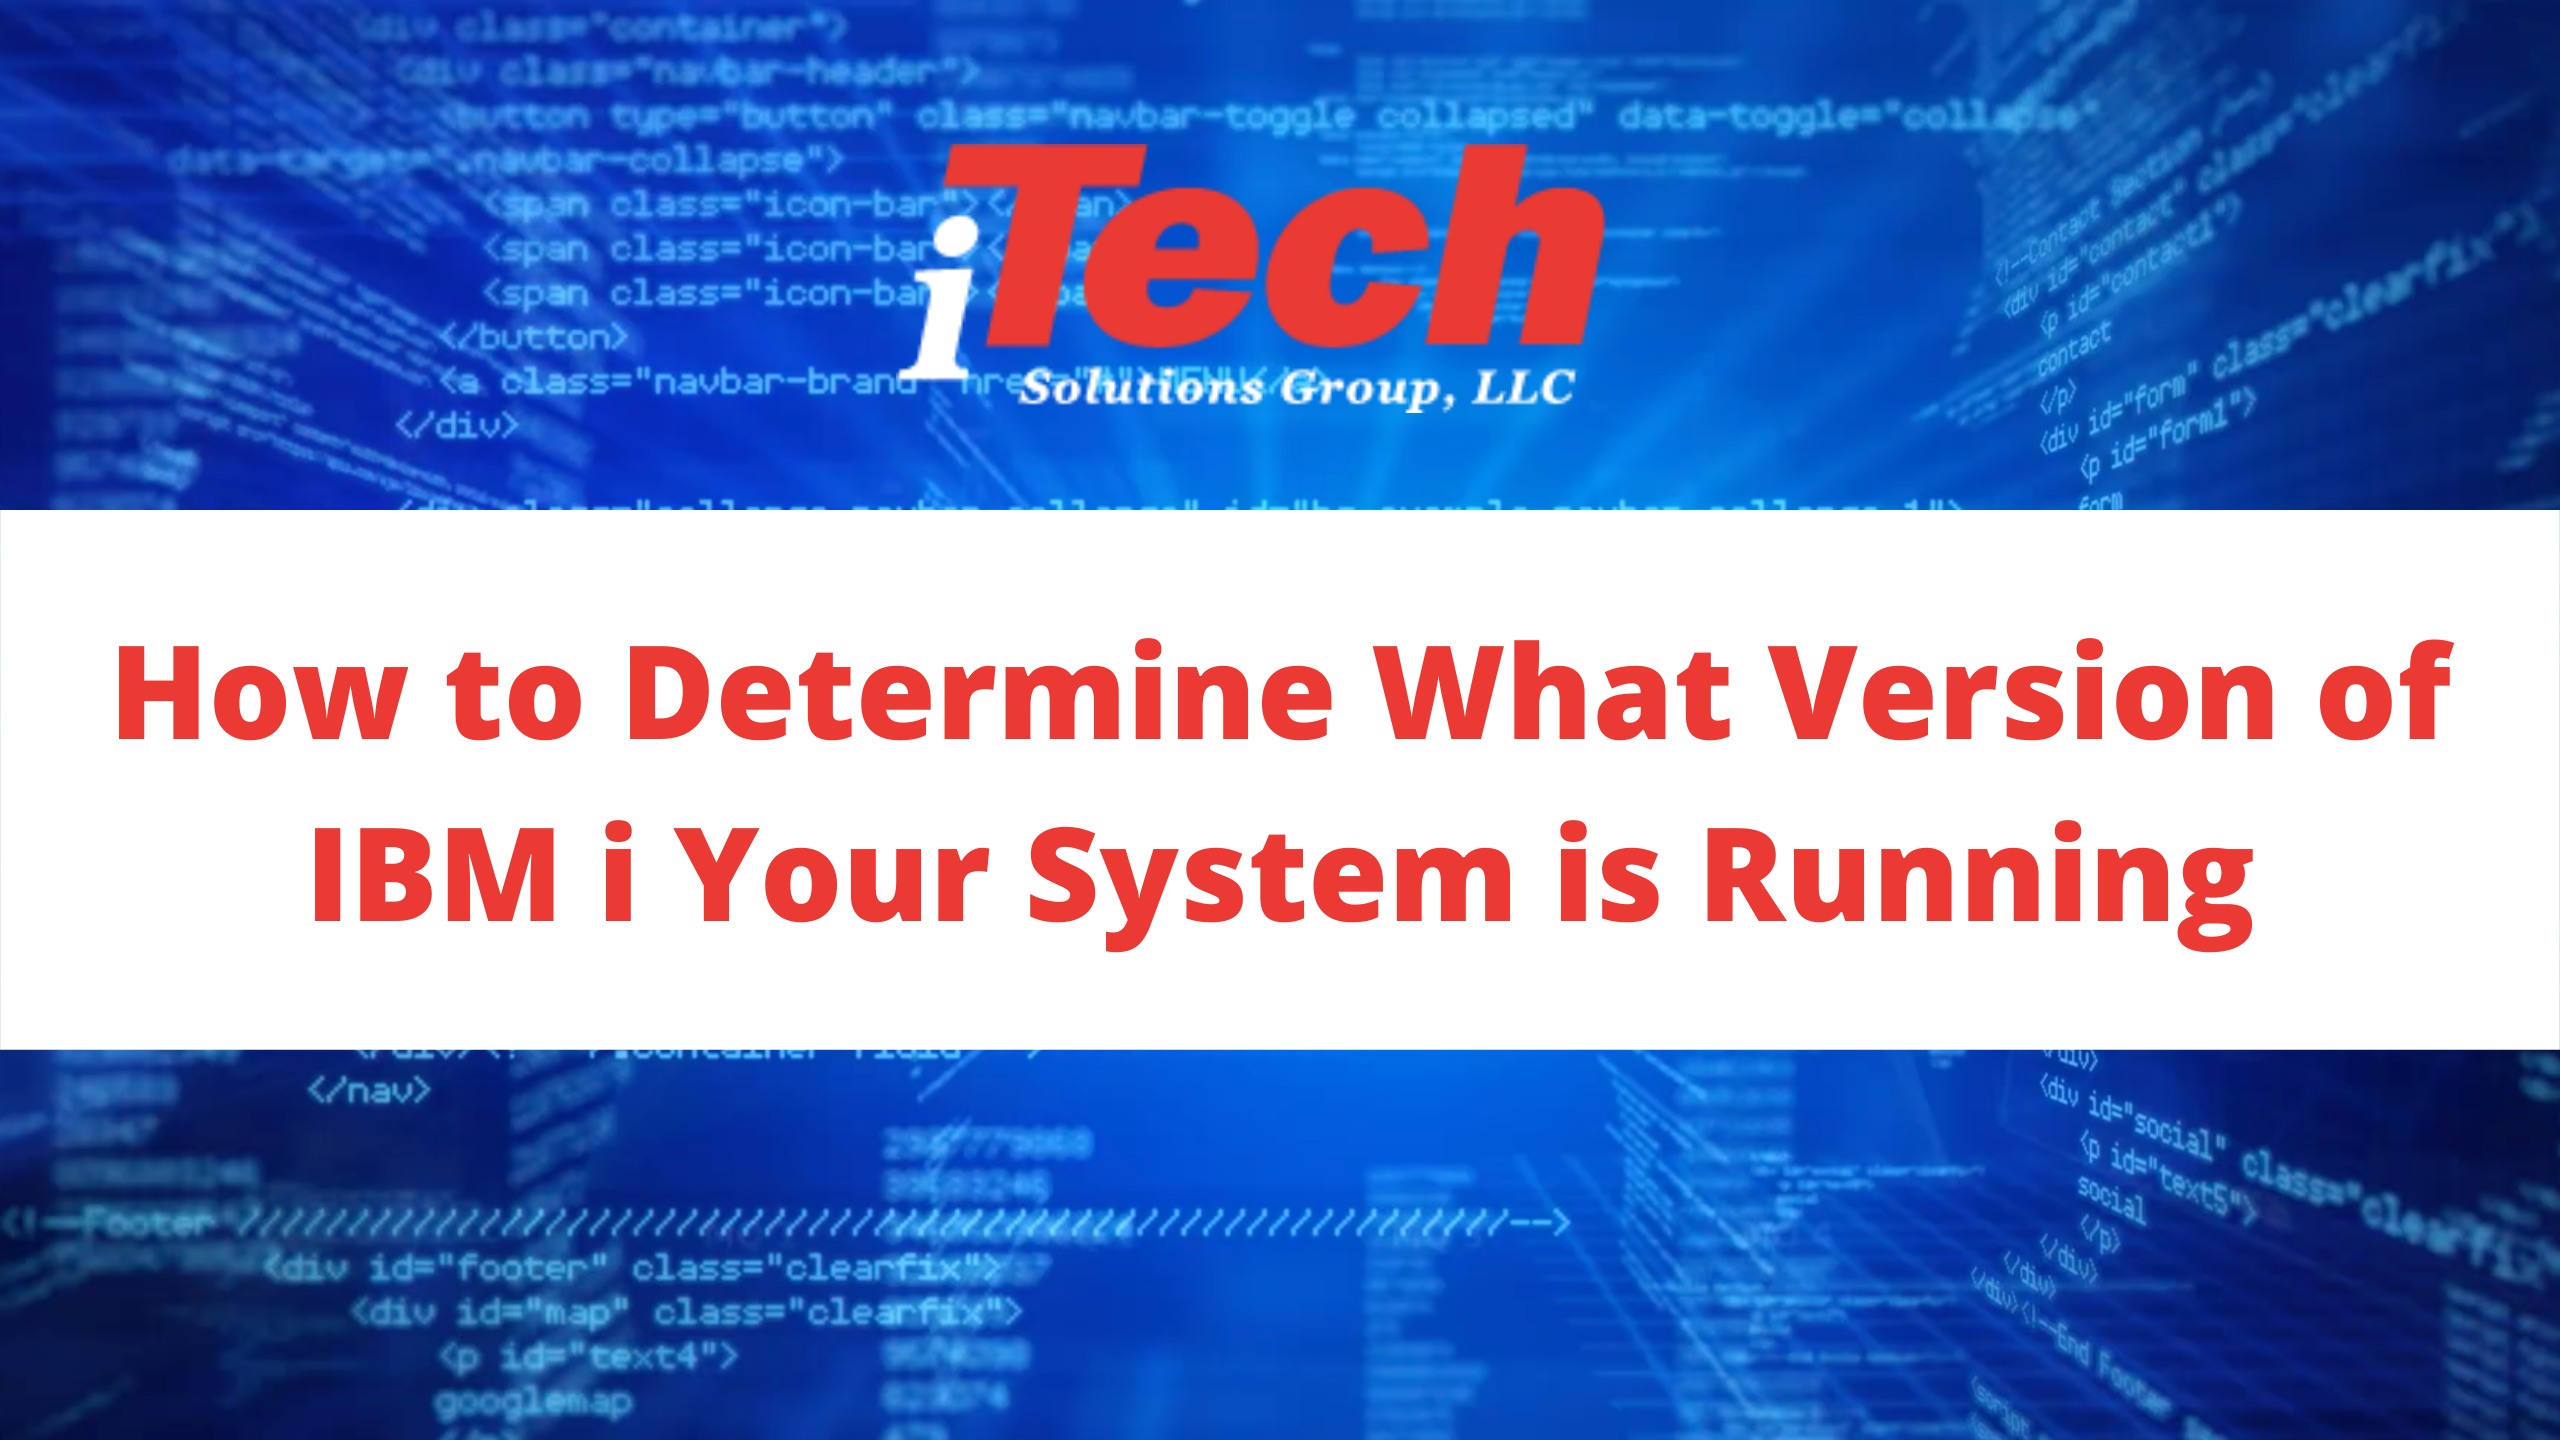 How to Determine What Version of IBM i Your System is Running